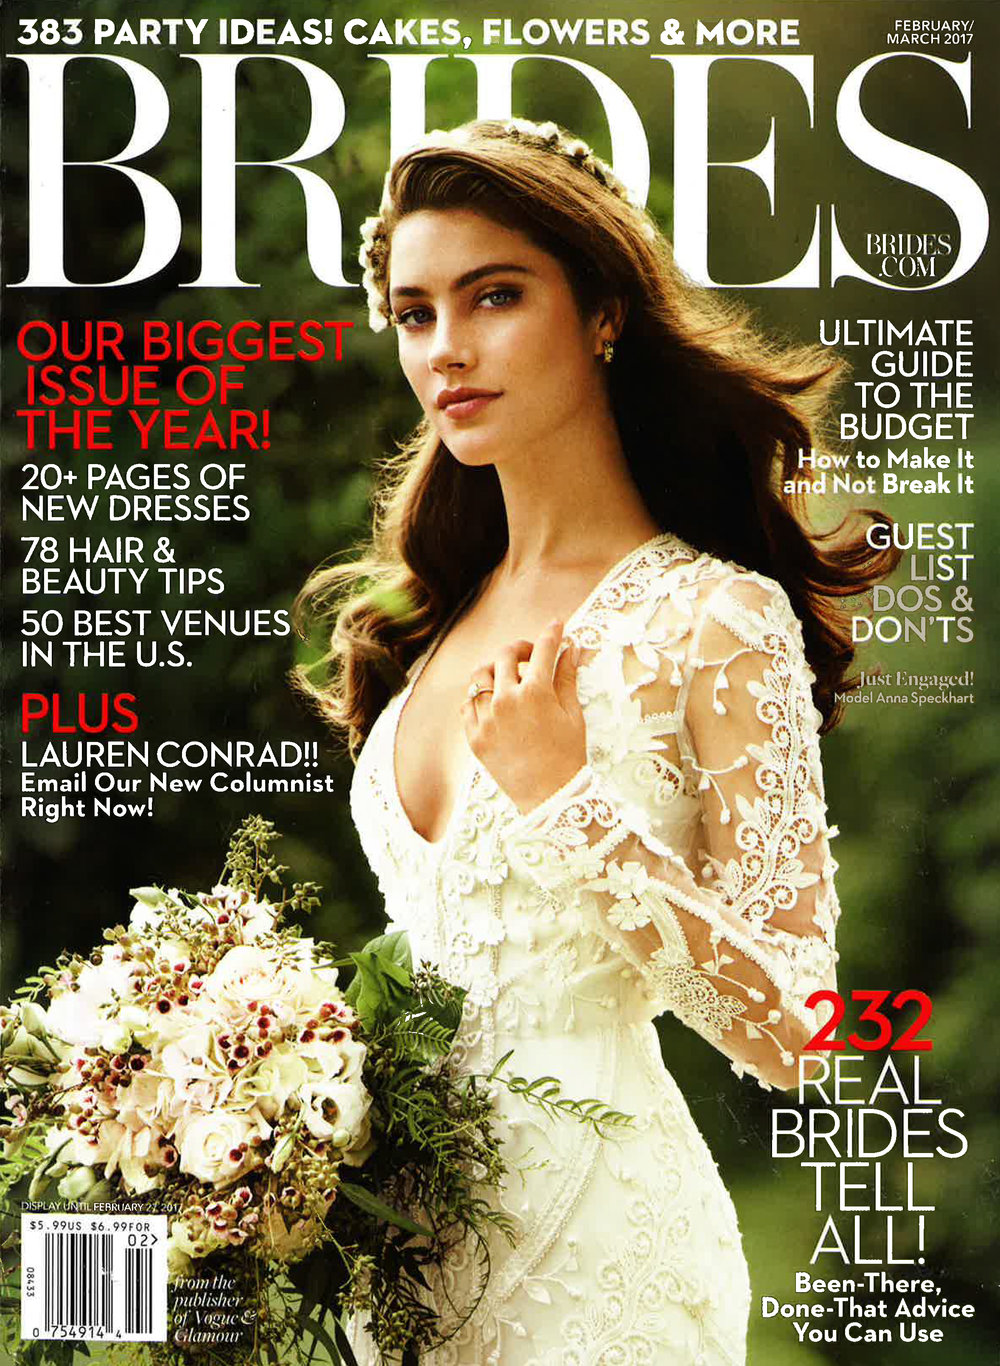 Brides_FebMarch_Cover.jpg